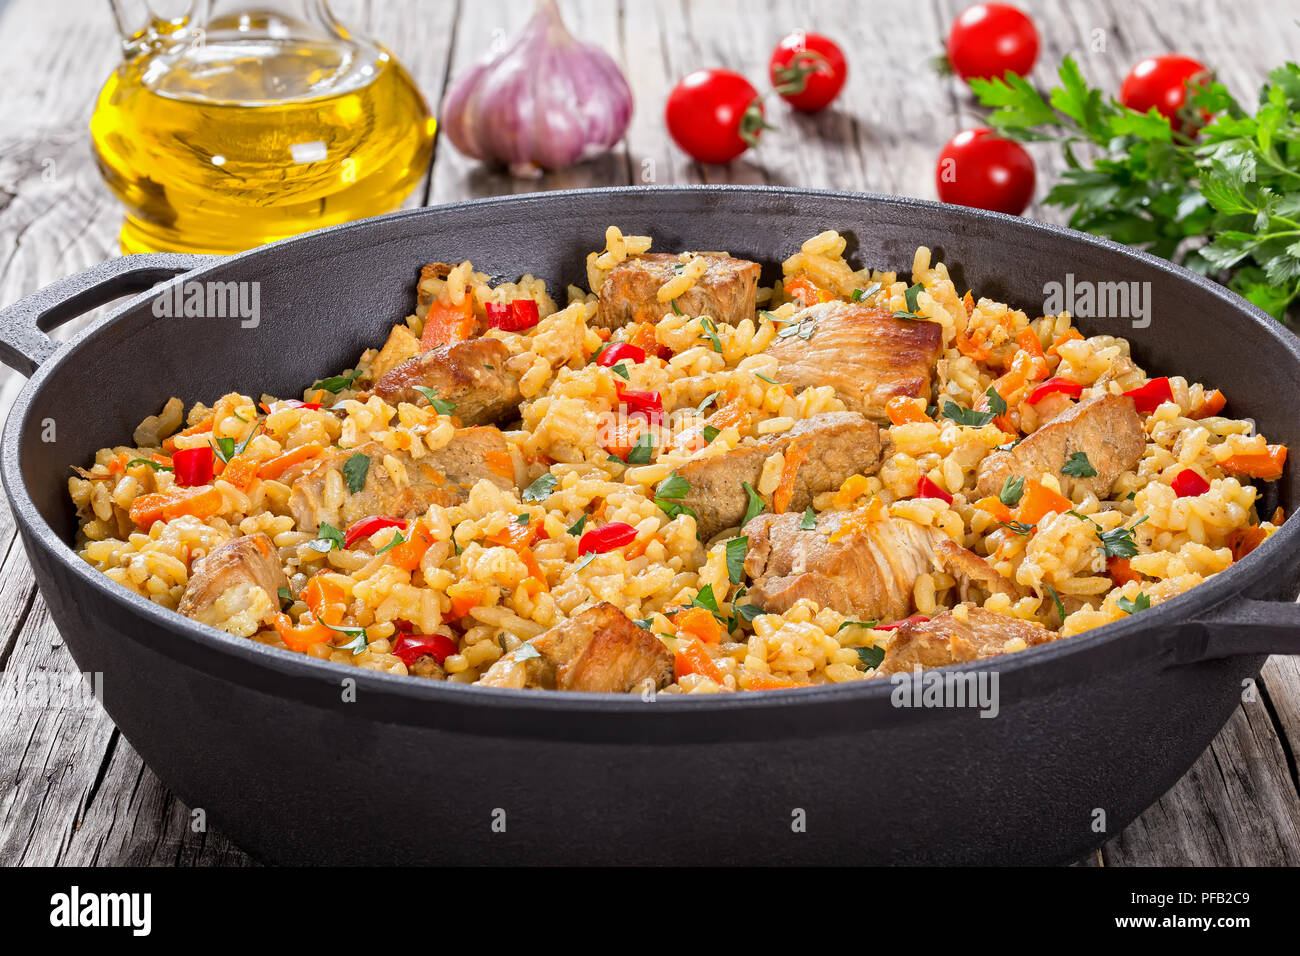 Homemade prepared paella with meat, pepper, vegetables and spices in iron stewpan on wooden planks,  bottle of olive oil,tomatoes,  parsley, garlic on - Stock Image